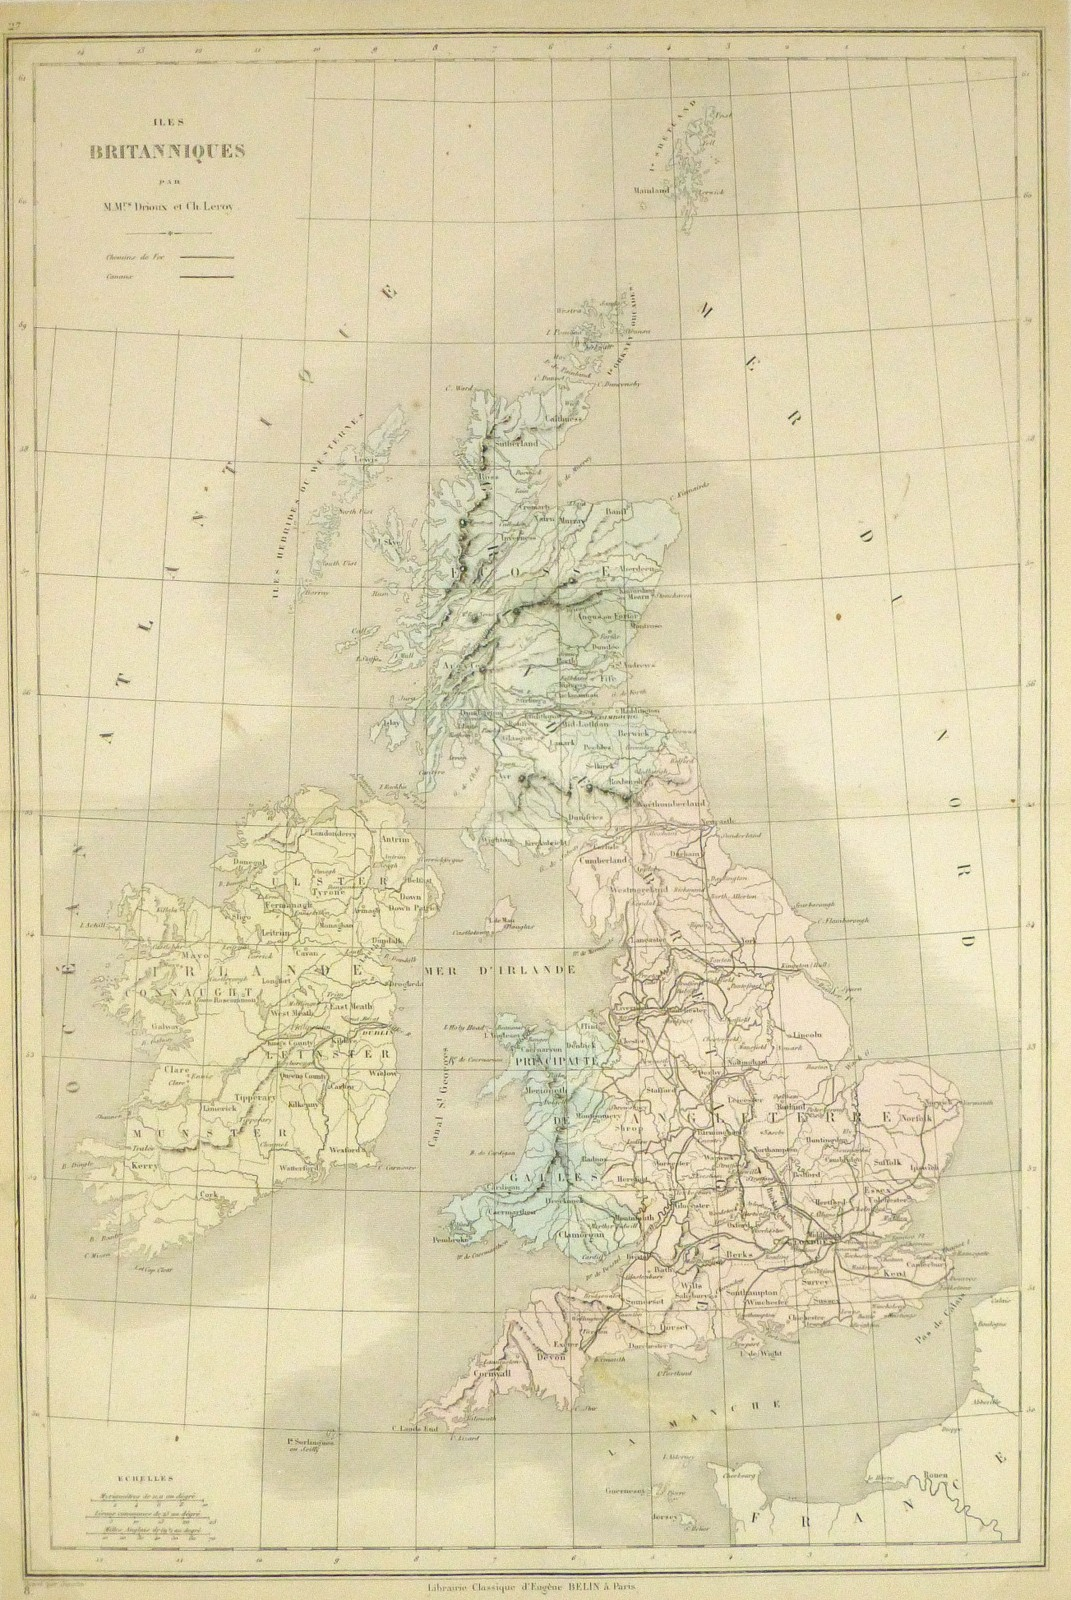 Map of British Isles, 1860 - Engraving-main-8147K